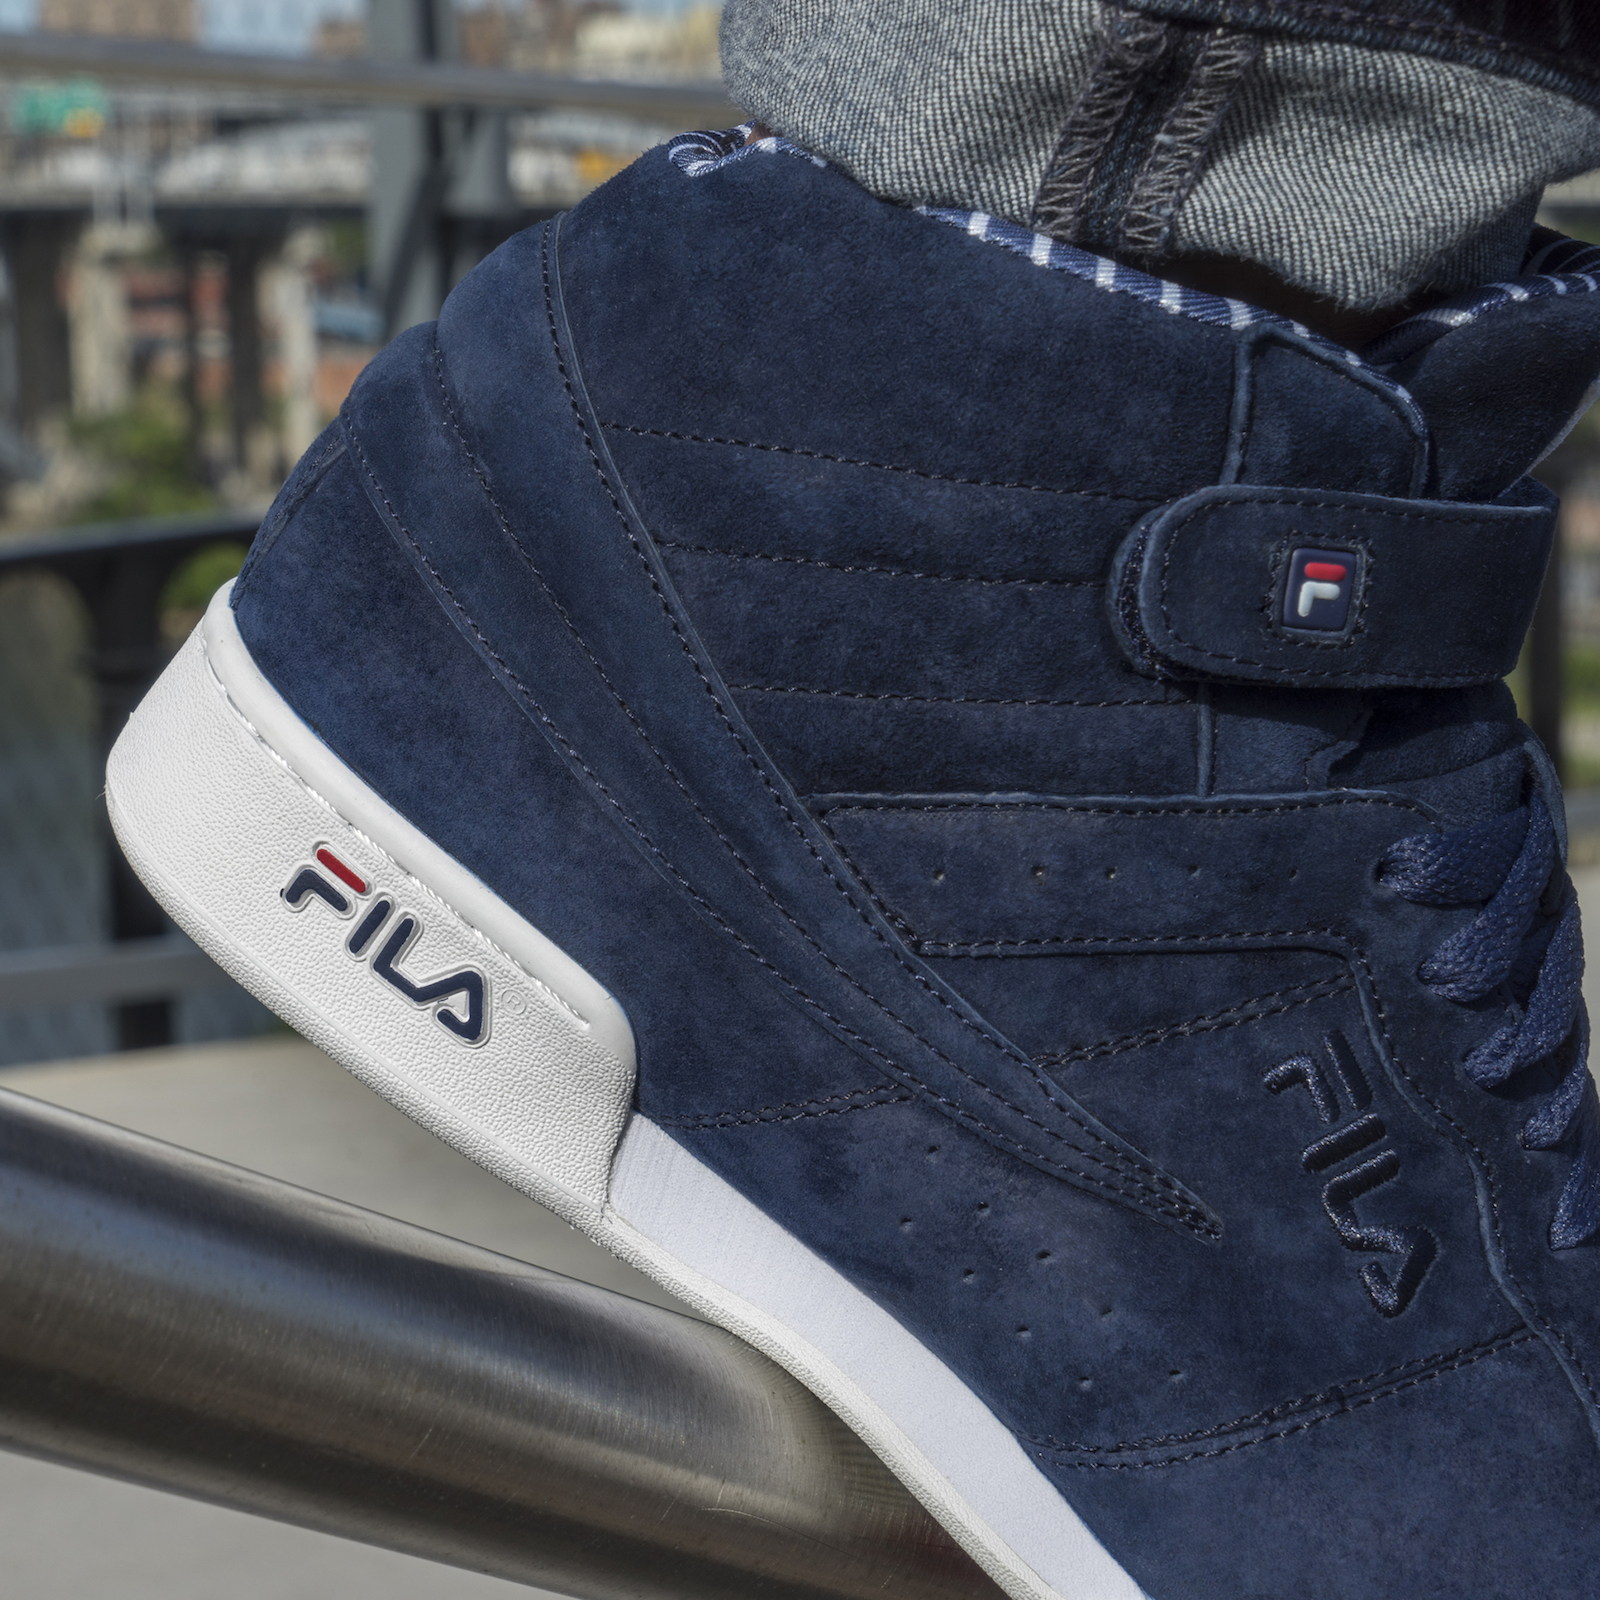 fila between the lines pack F-13 6